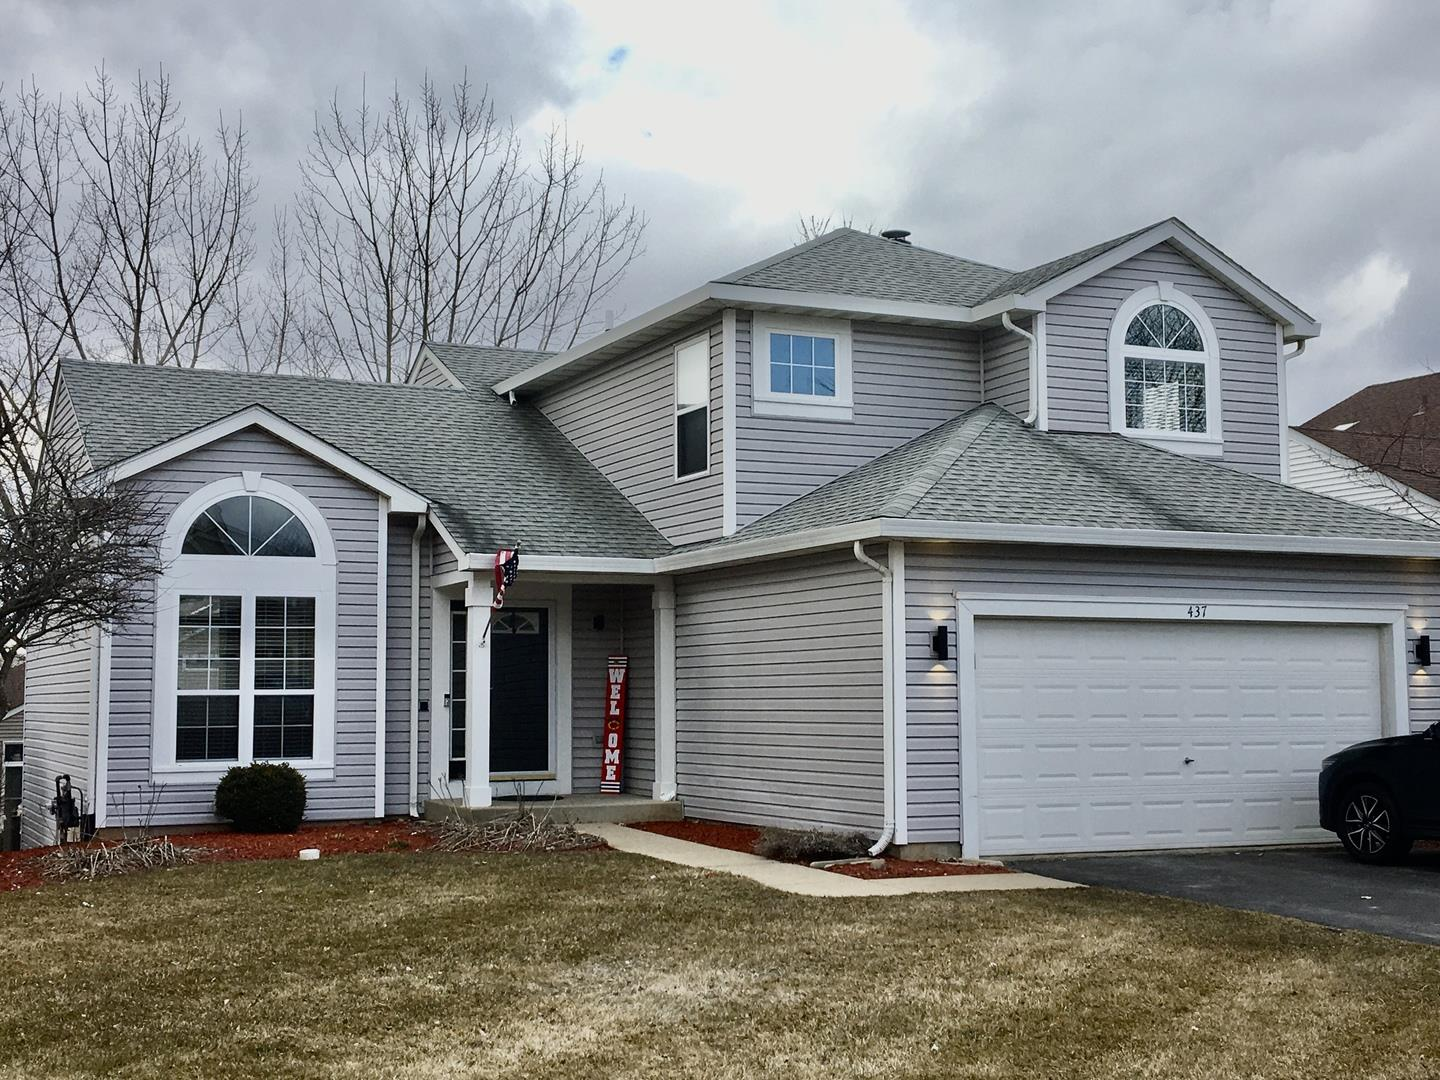 437 Big Cloud Pass, Lake in the Hills, IL 60156 - #: 10653626